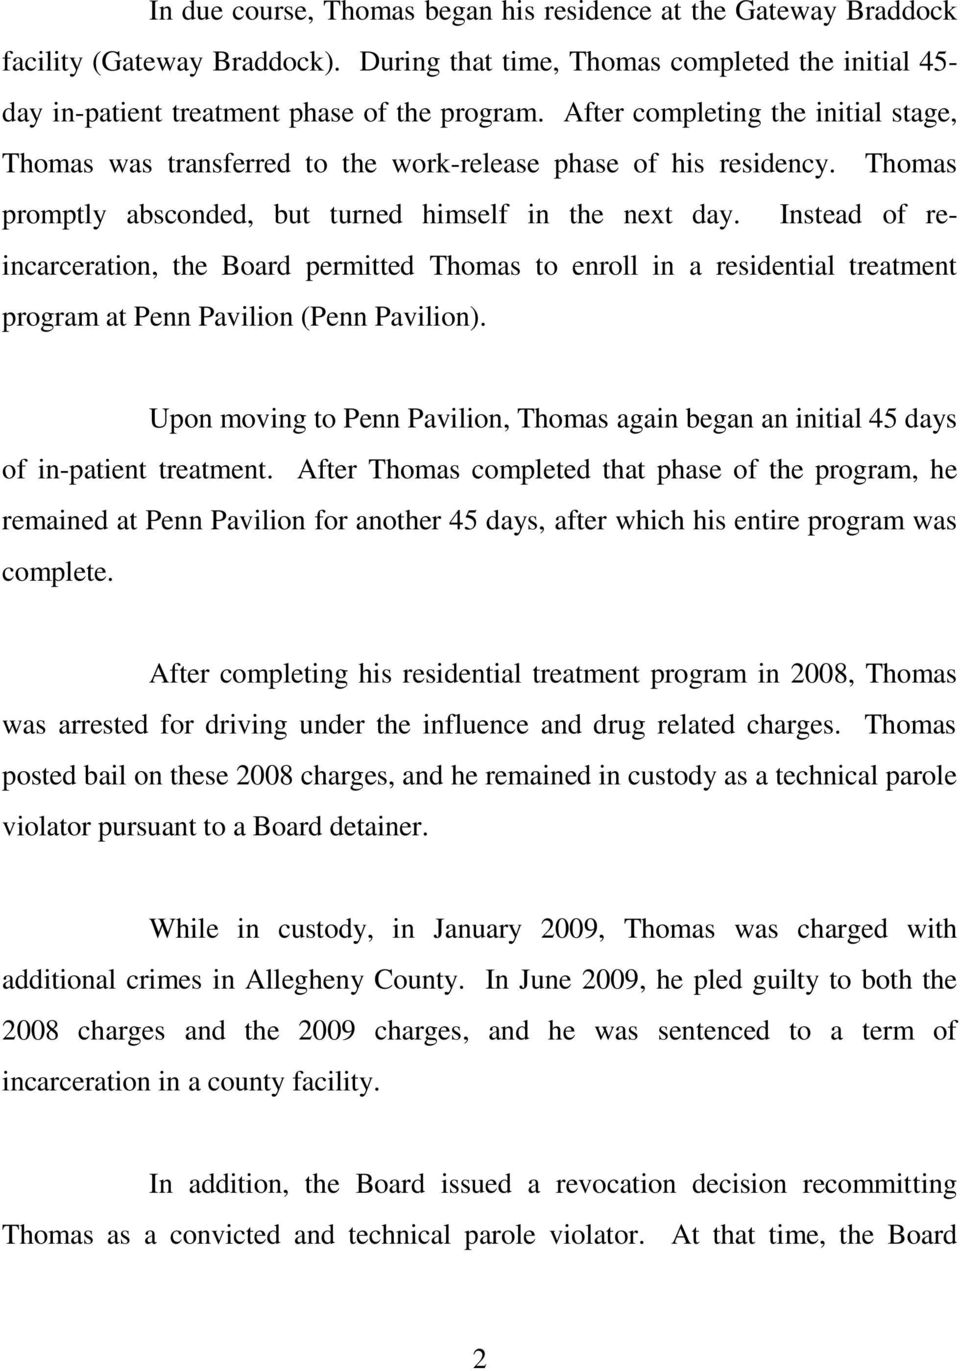 Instead of reincarceration, the Board permitted Thomas to enroll in a residential treatment program at Penn Pavilion (Penn Pavilion).